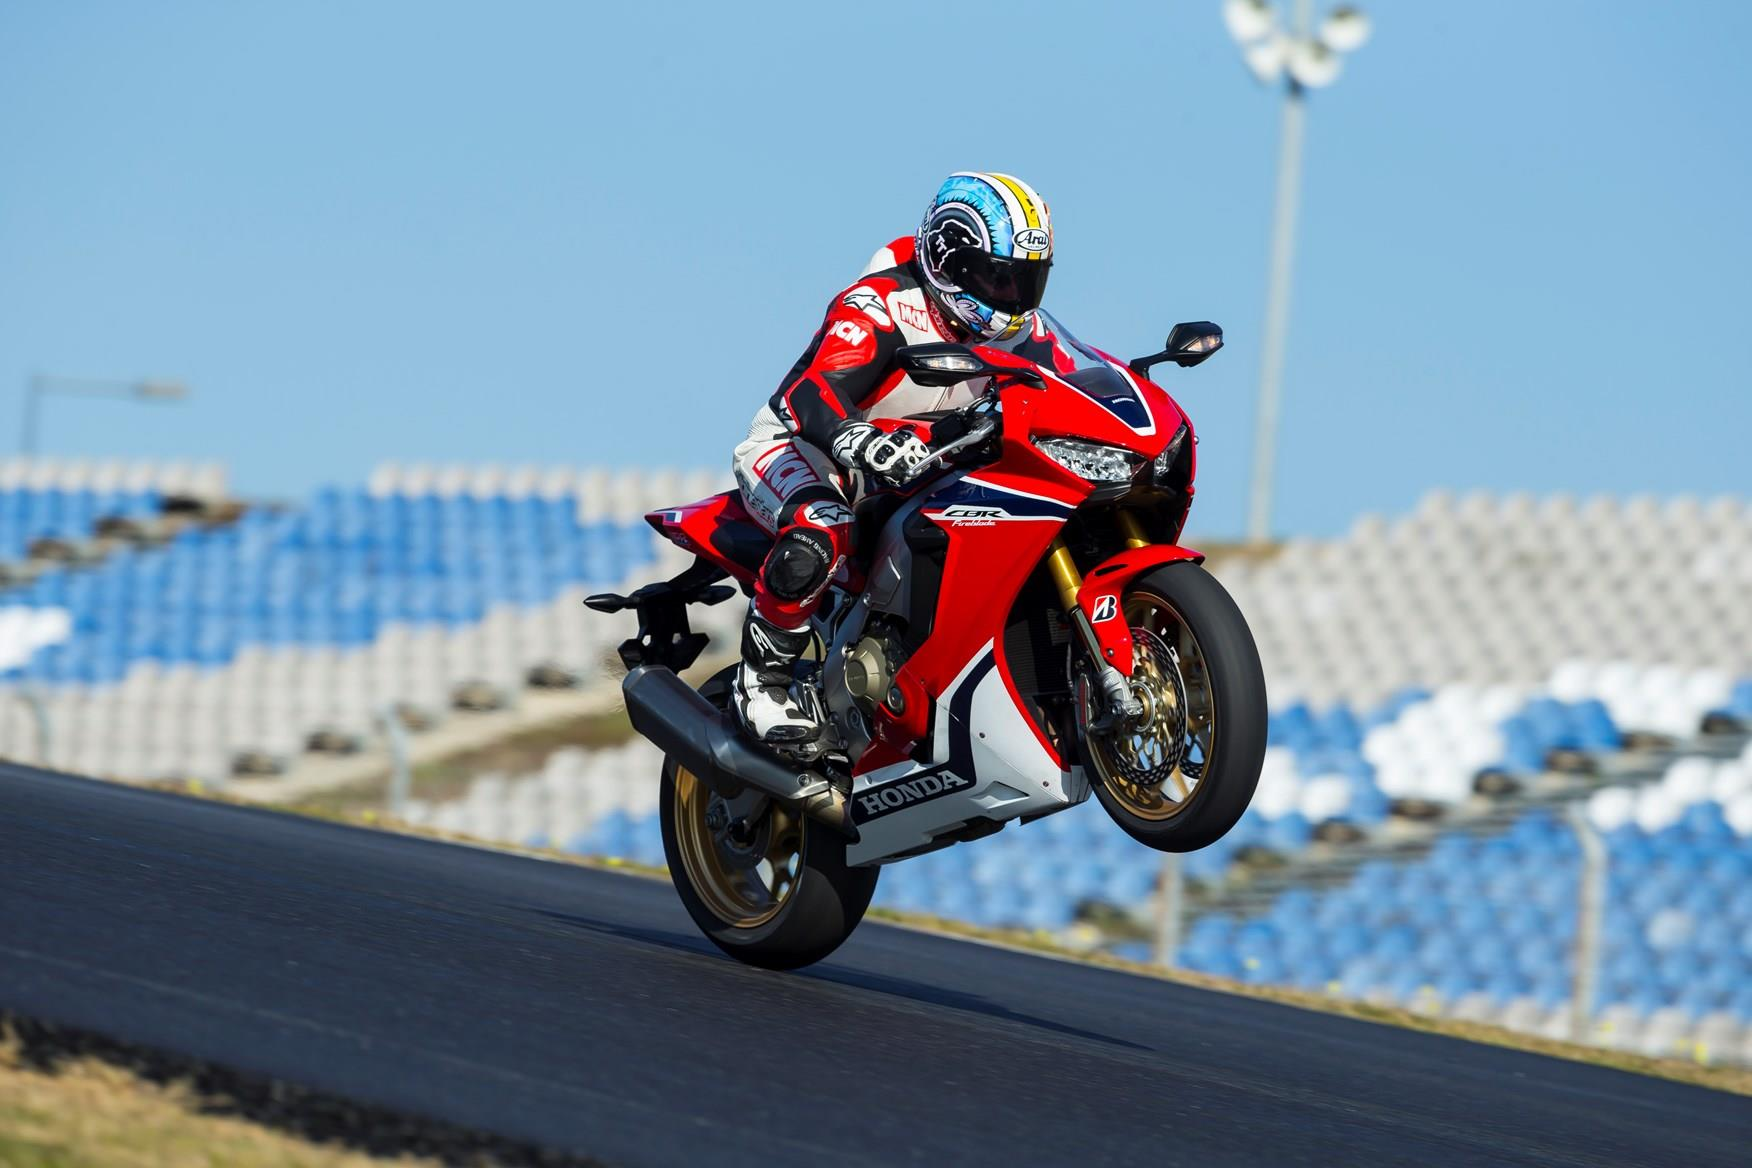 MCN's Adam Child wheelies the 2017-on Fireblade SP